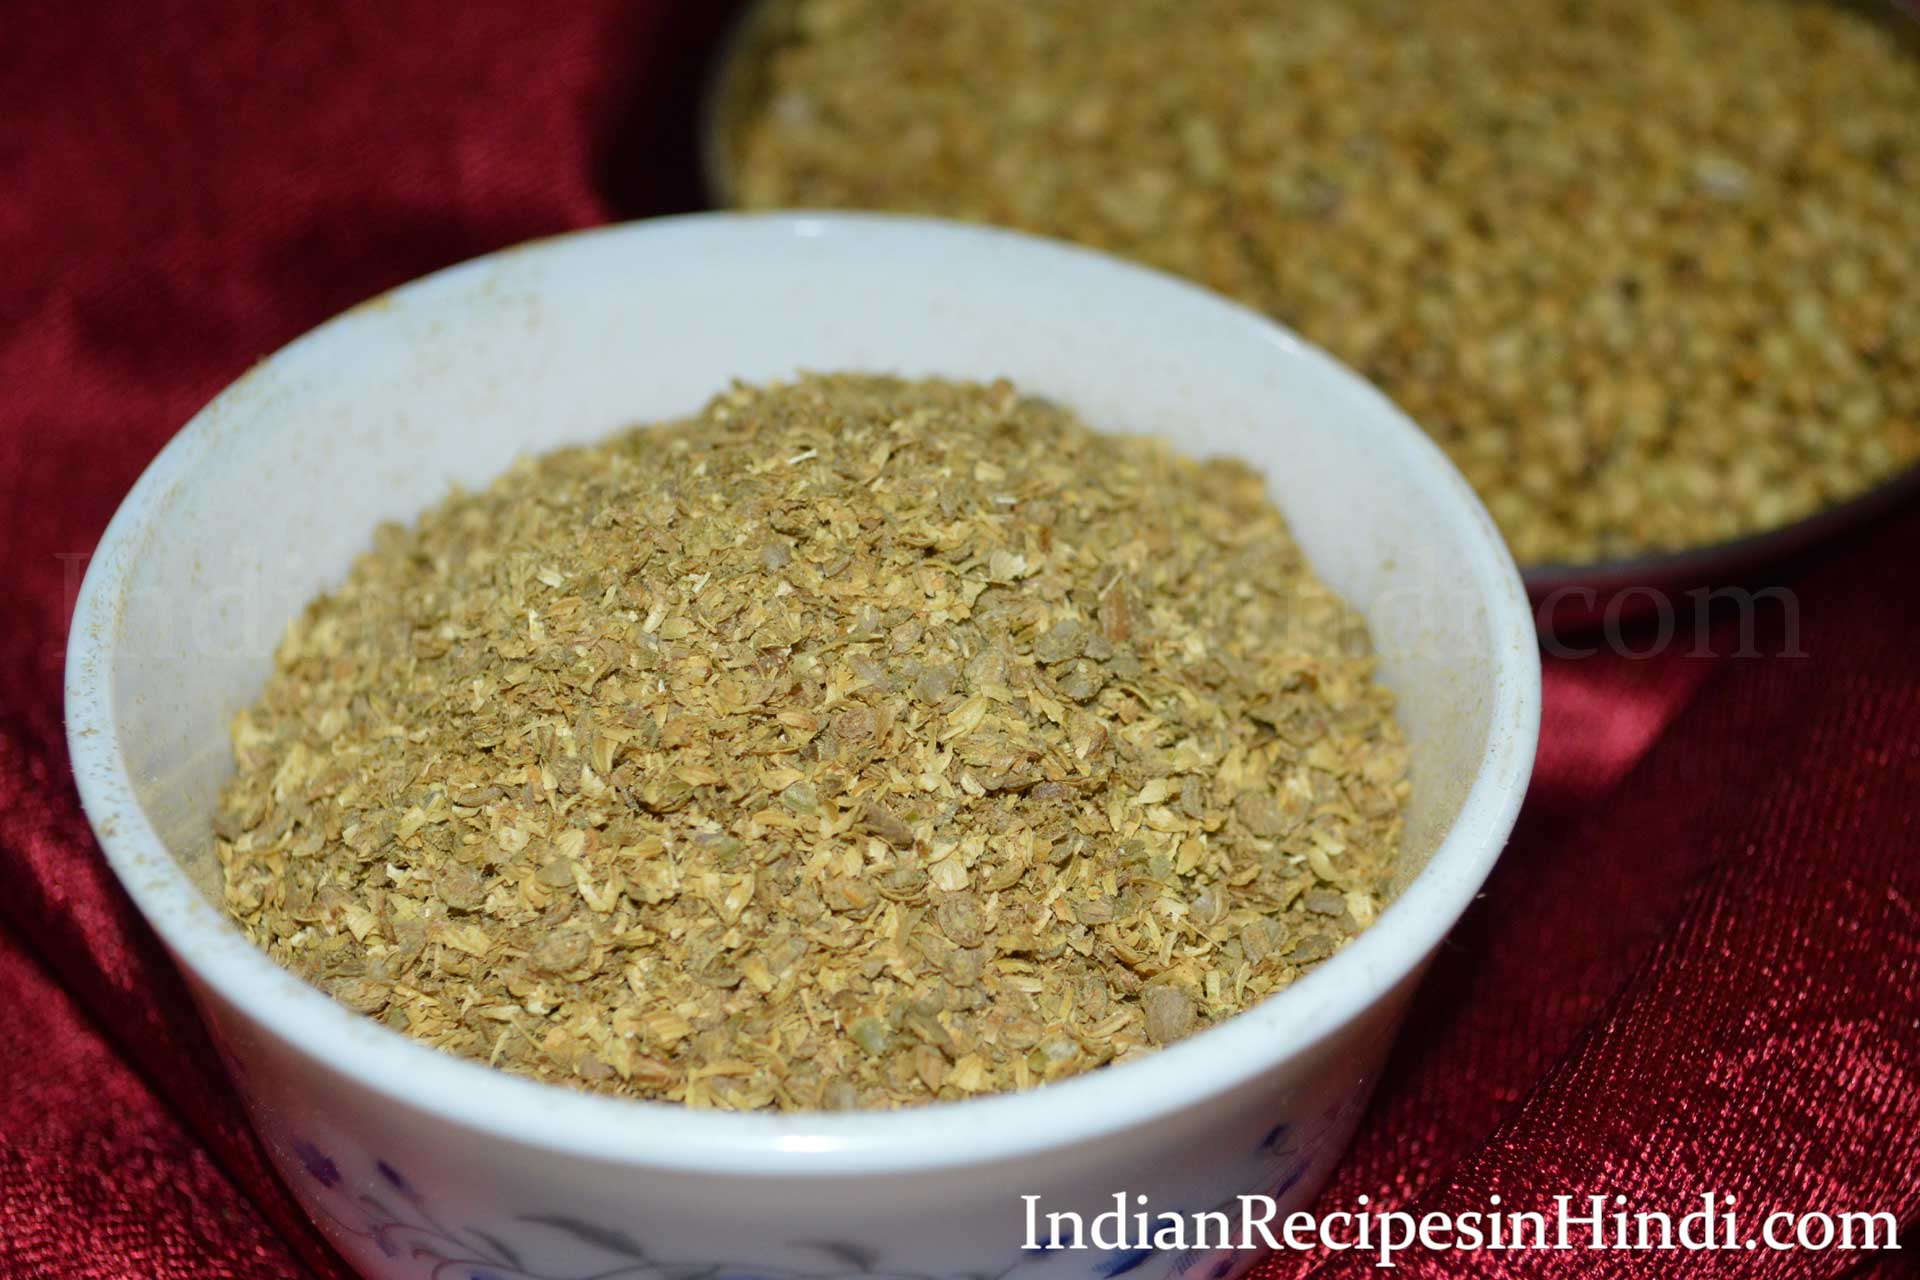 dhaniya powder - धनिया पाउडर | coriander powder in